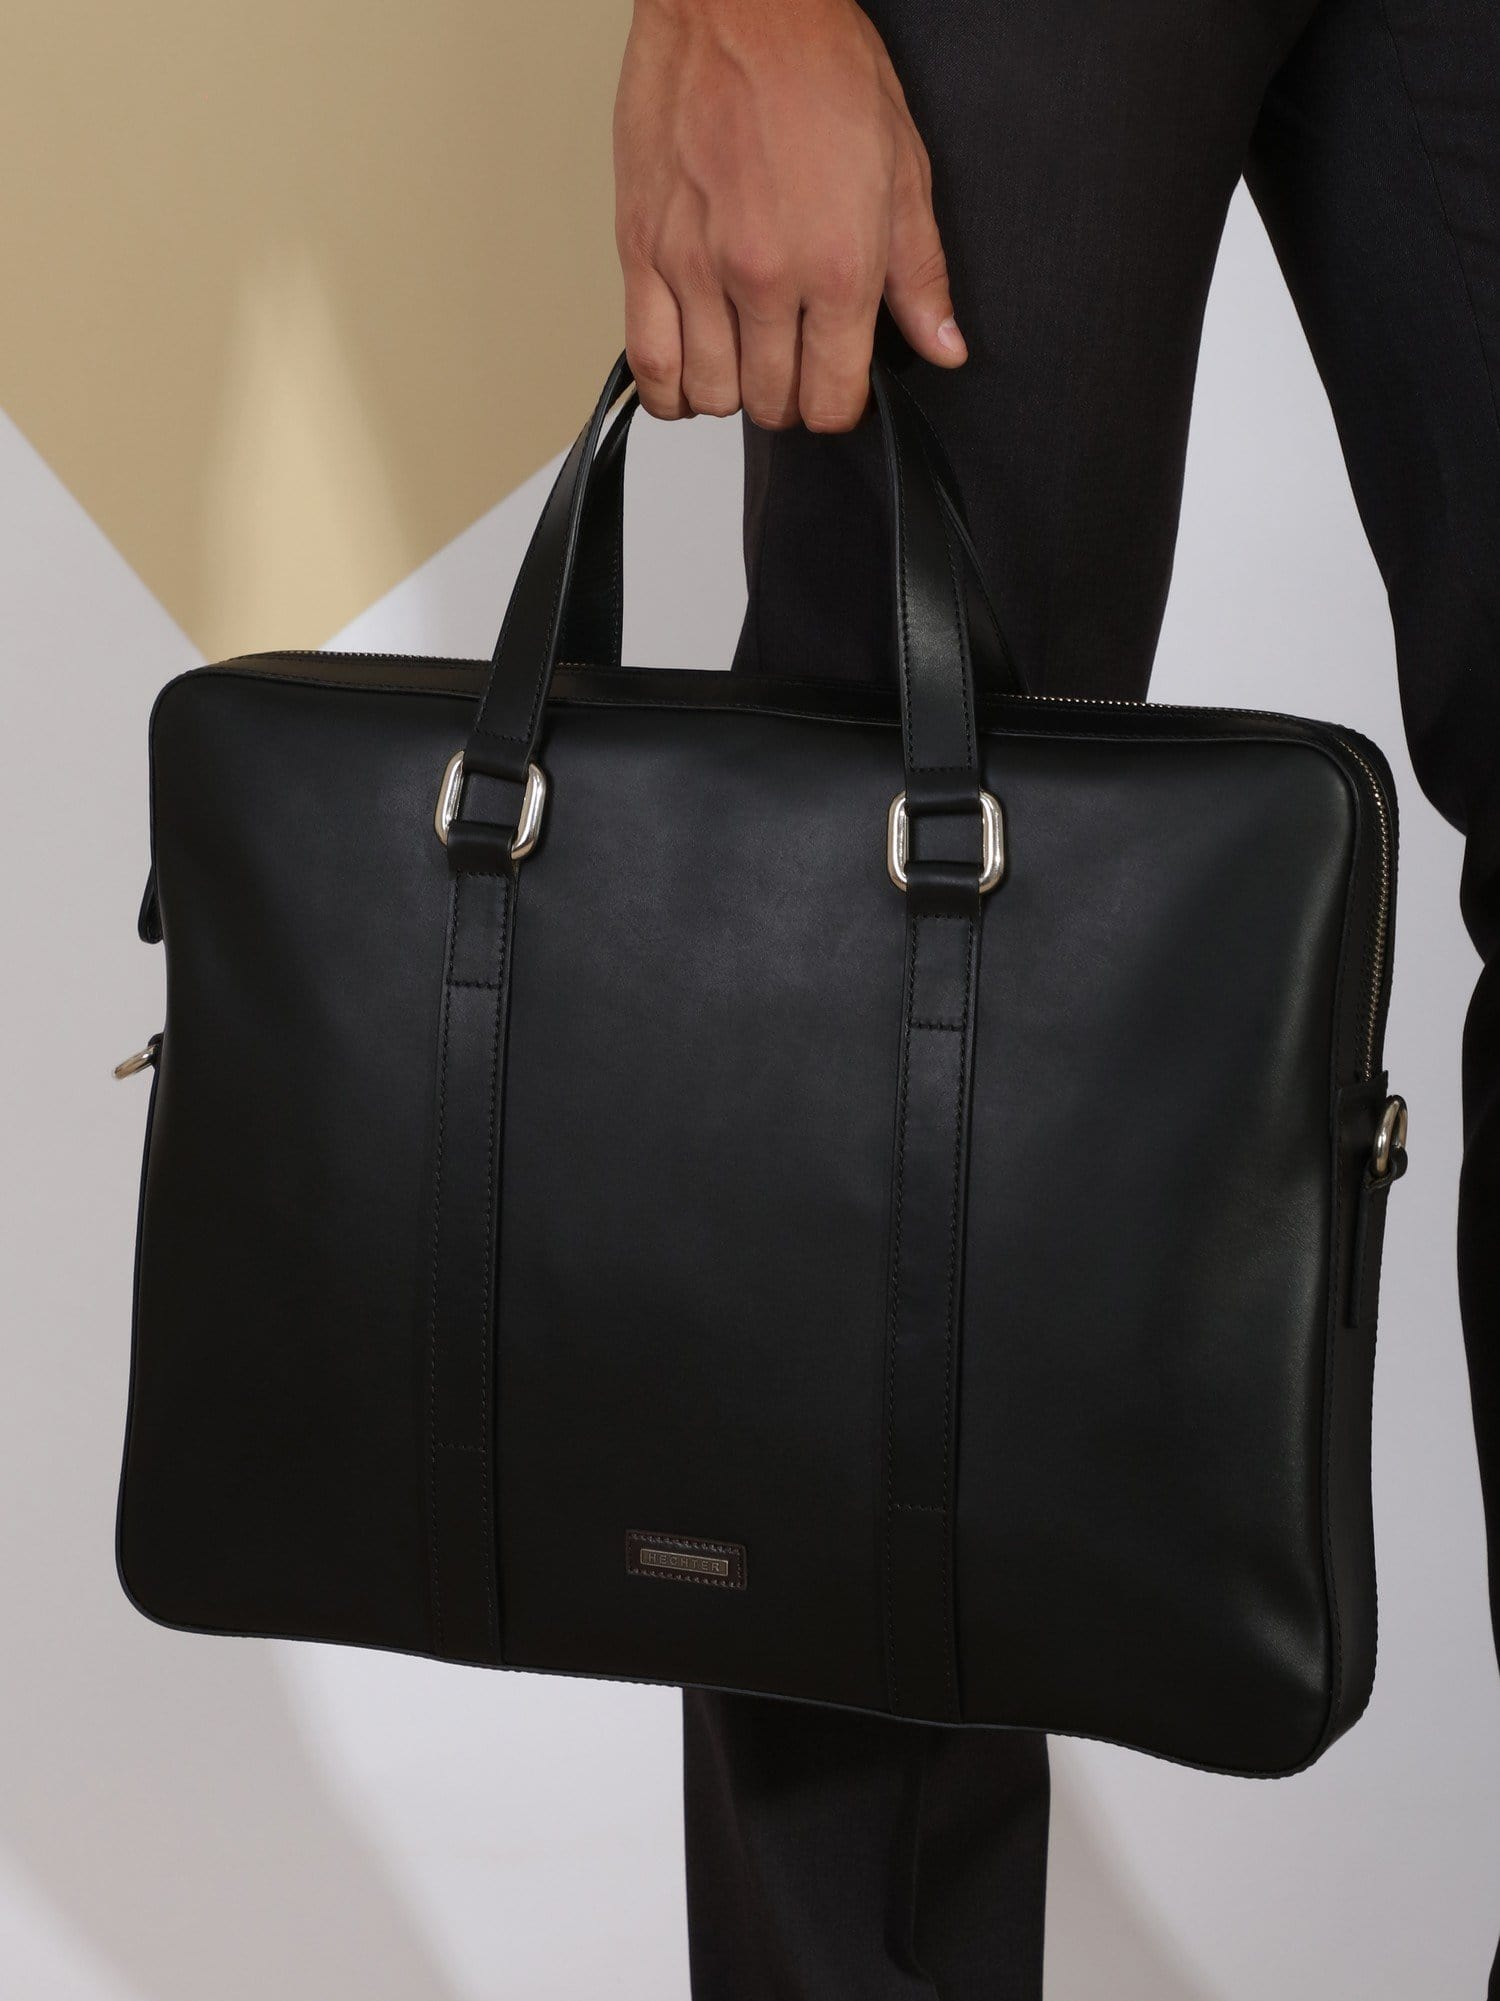 Daniel Hechter Other Accessories Black / Os Modern Leather Briefcase